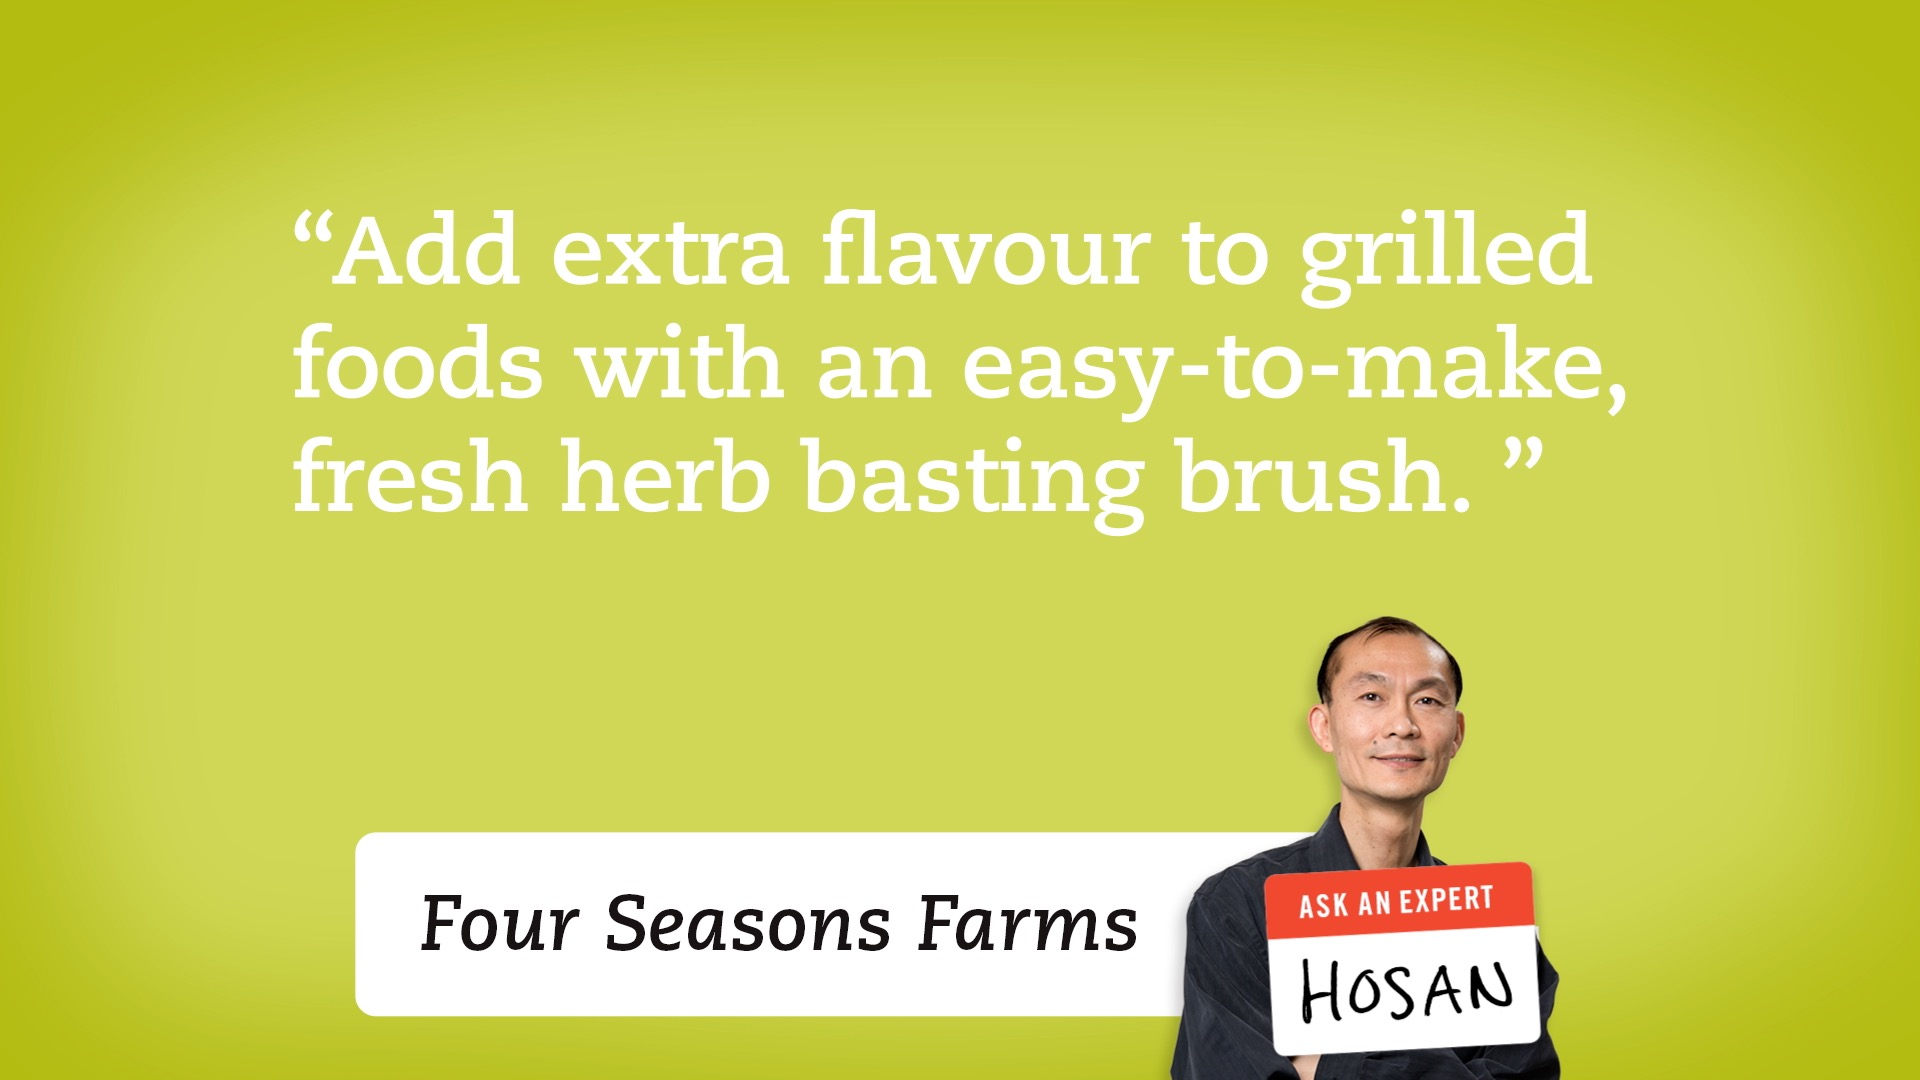 Add extra flavour to grilled foods with an easy-to-make, fresh herb basting brush.